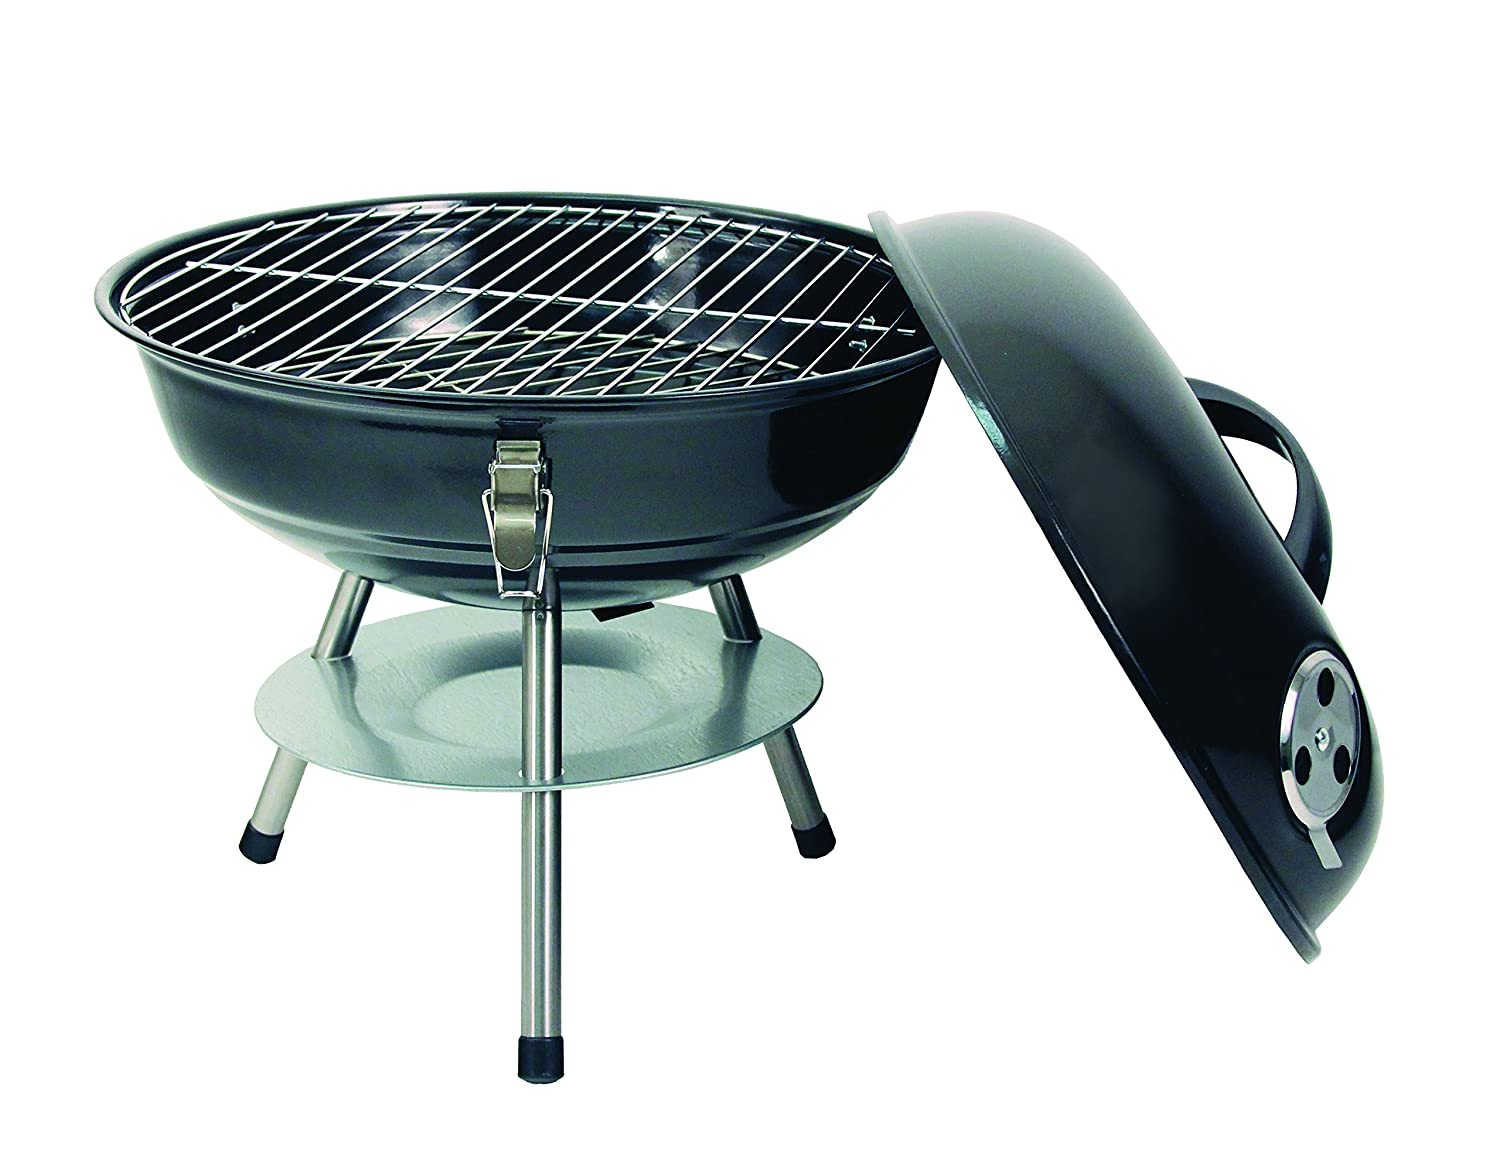 Amazon.com: Texsport - Parrilla para barbacoa, color gris ...